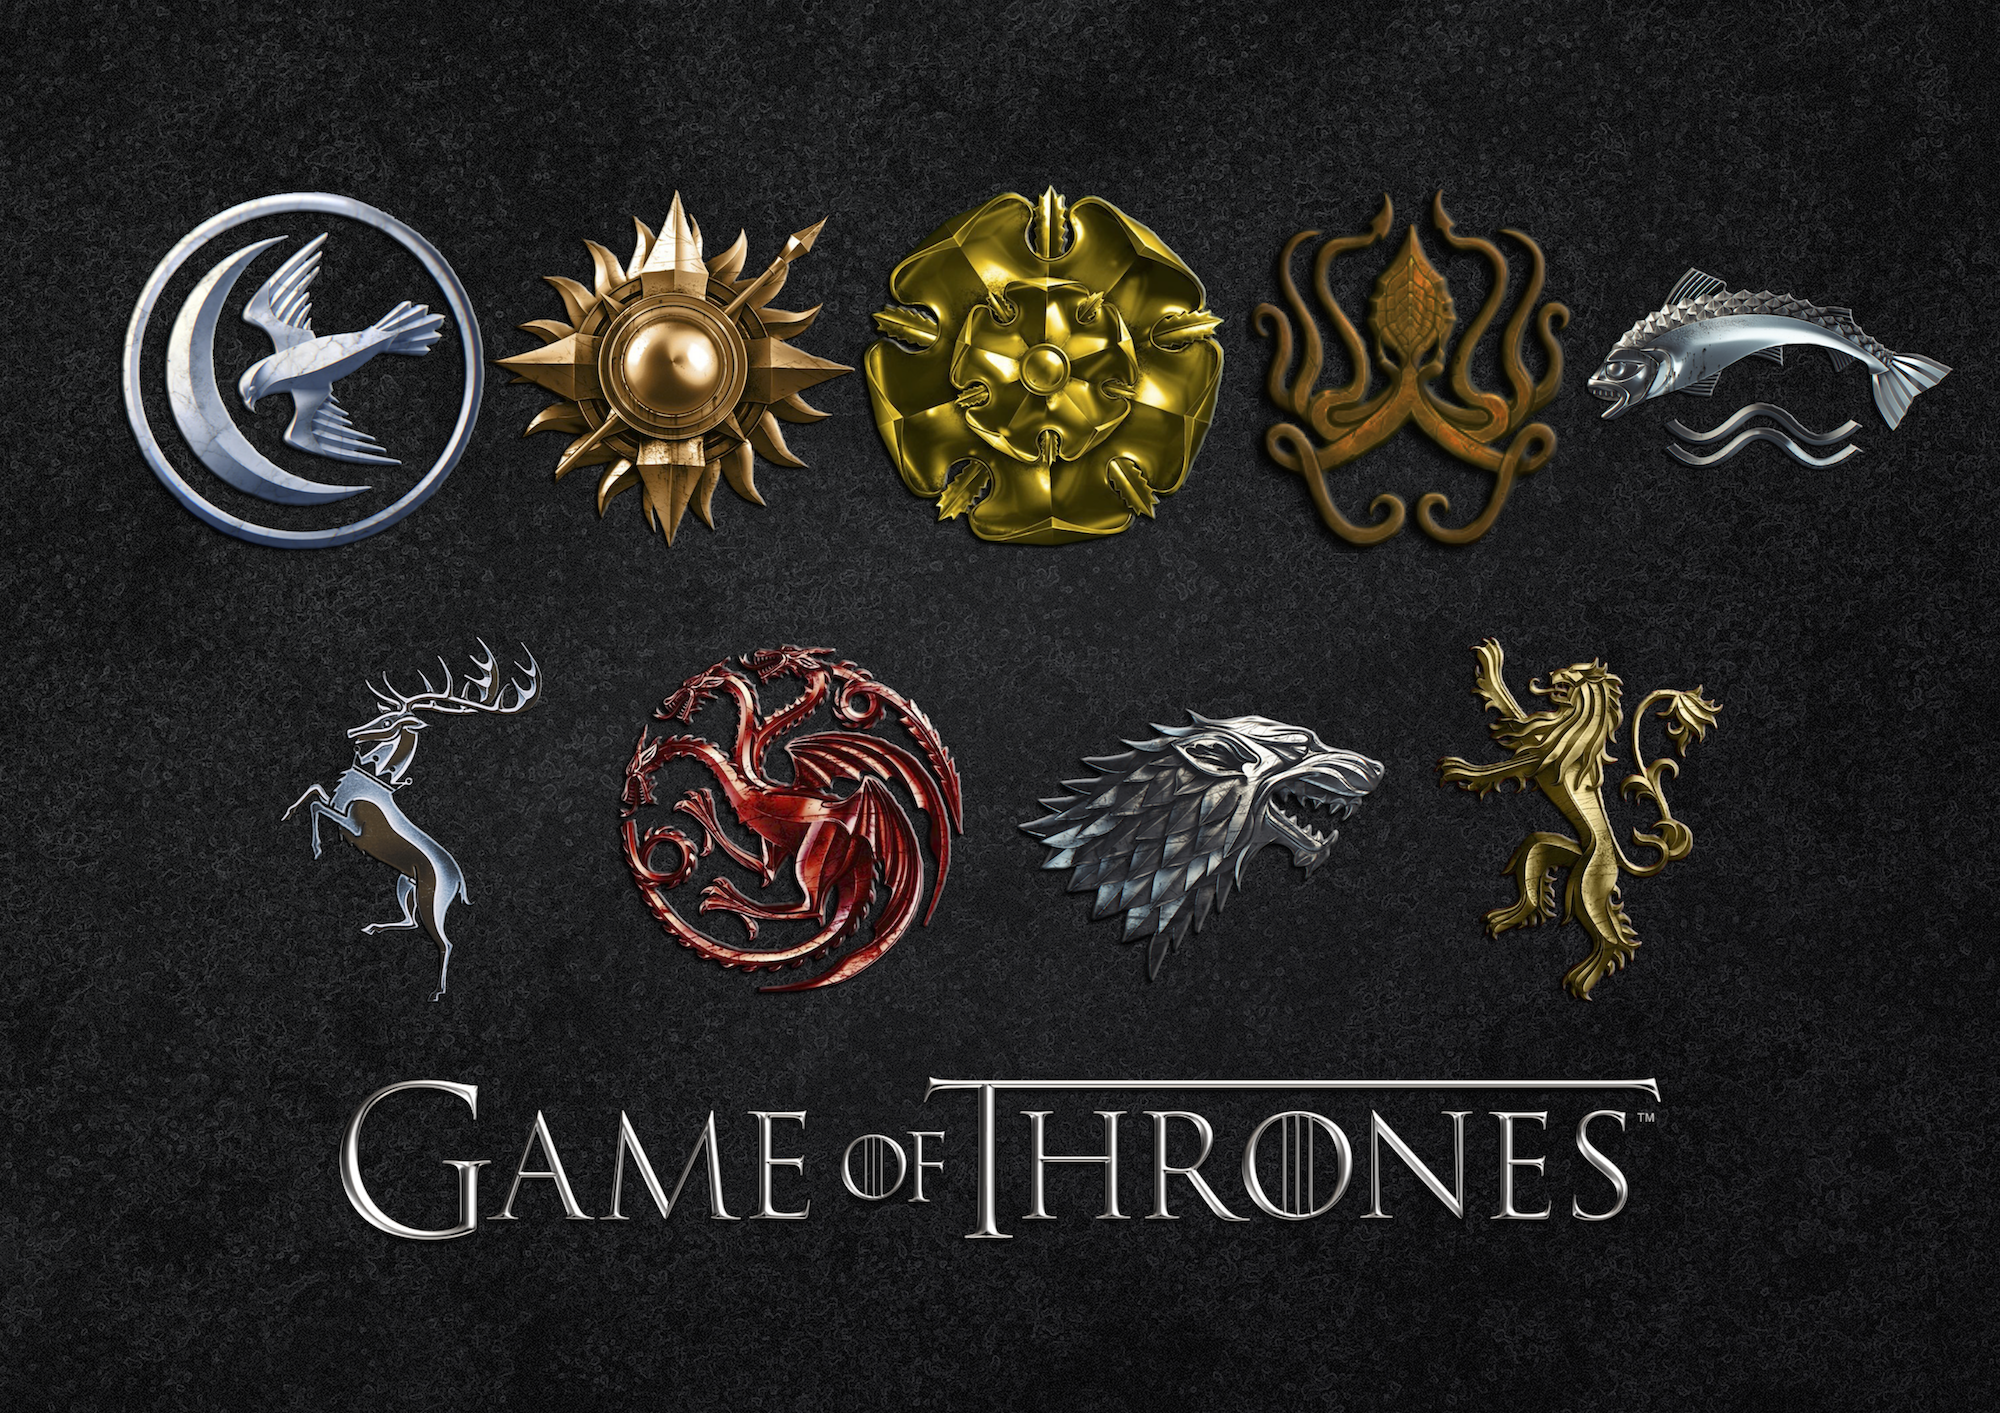 game of thrones house sigil folder icons by katsy0 on deviantart. Black Bedroom Furniture Sets. Home Design Ideas